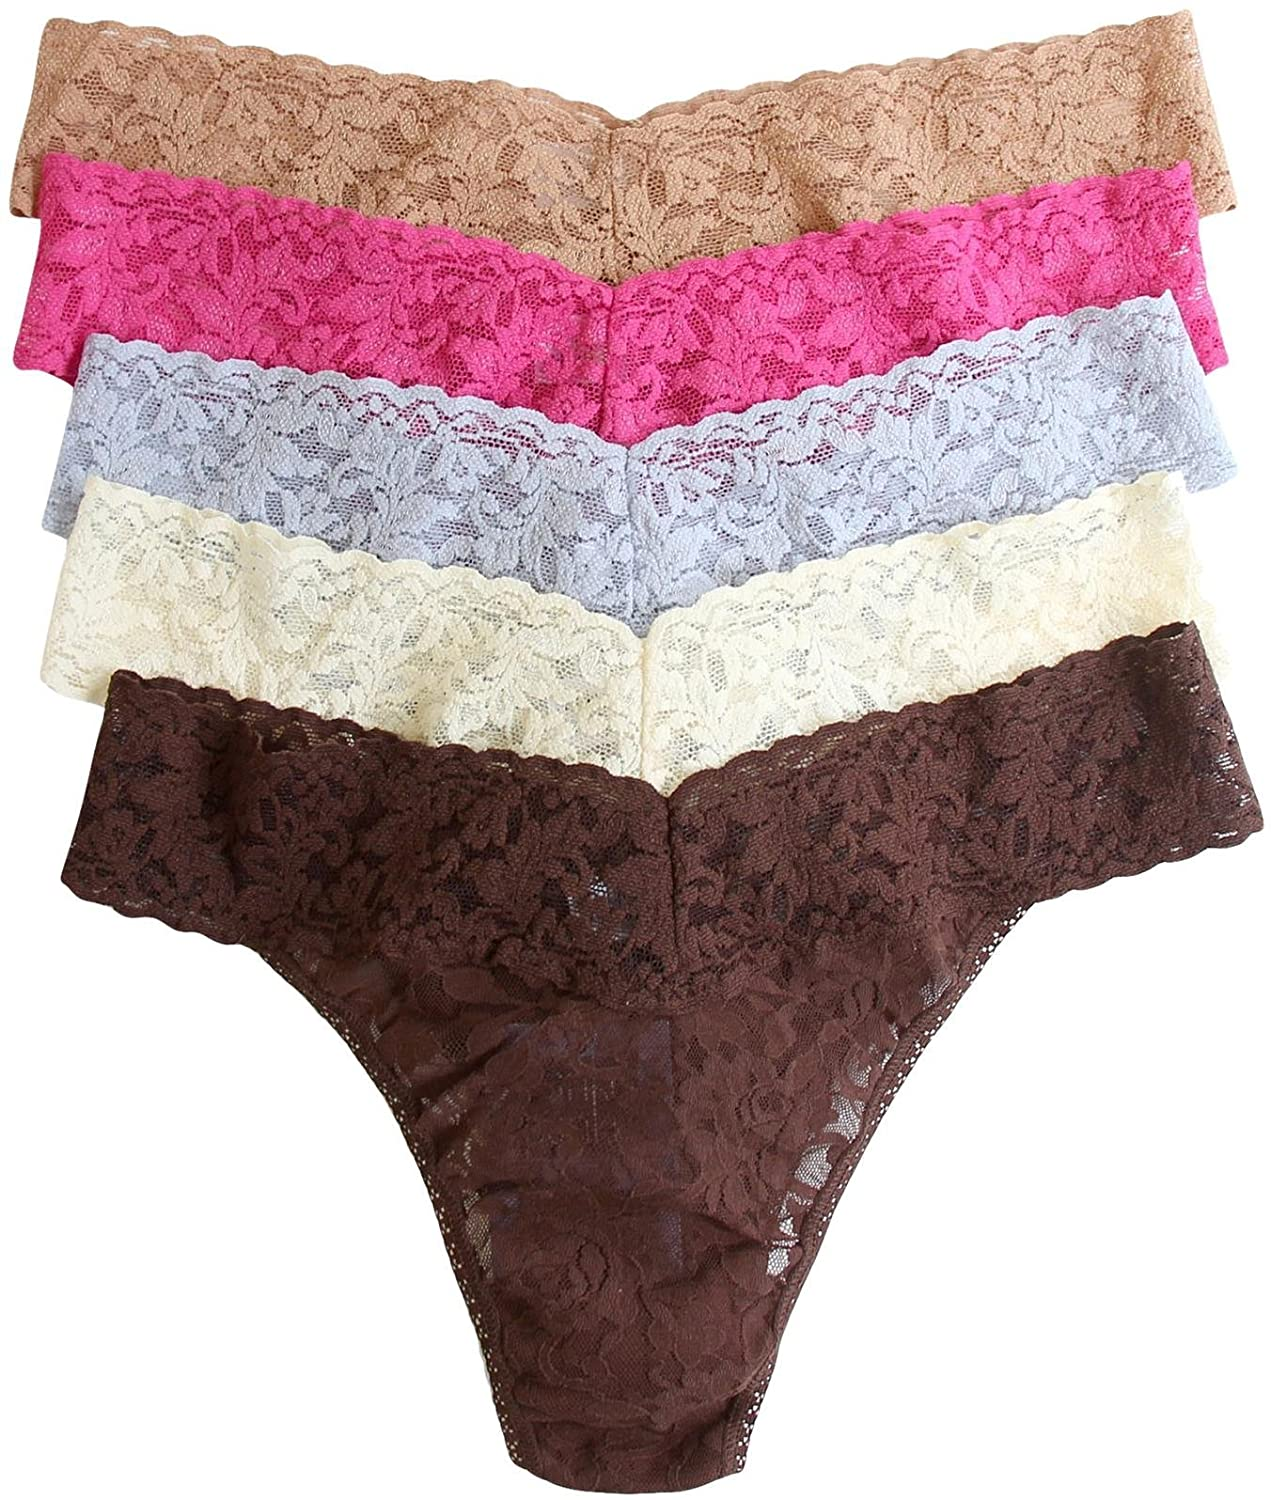 hanky panky Signature Lace Low Rise Thong 5-Pack